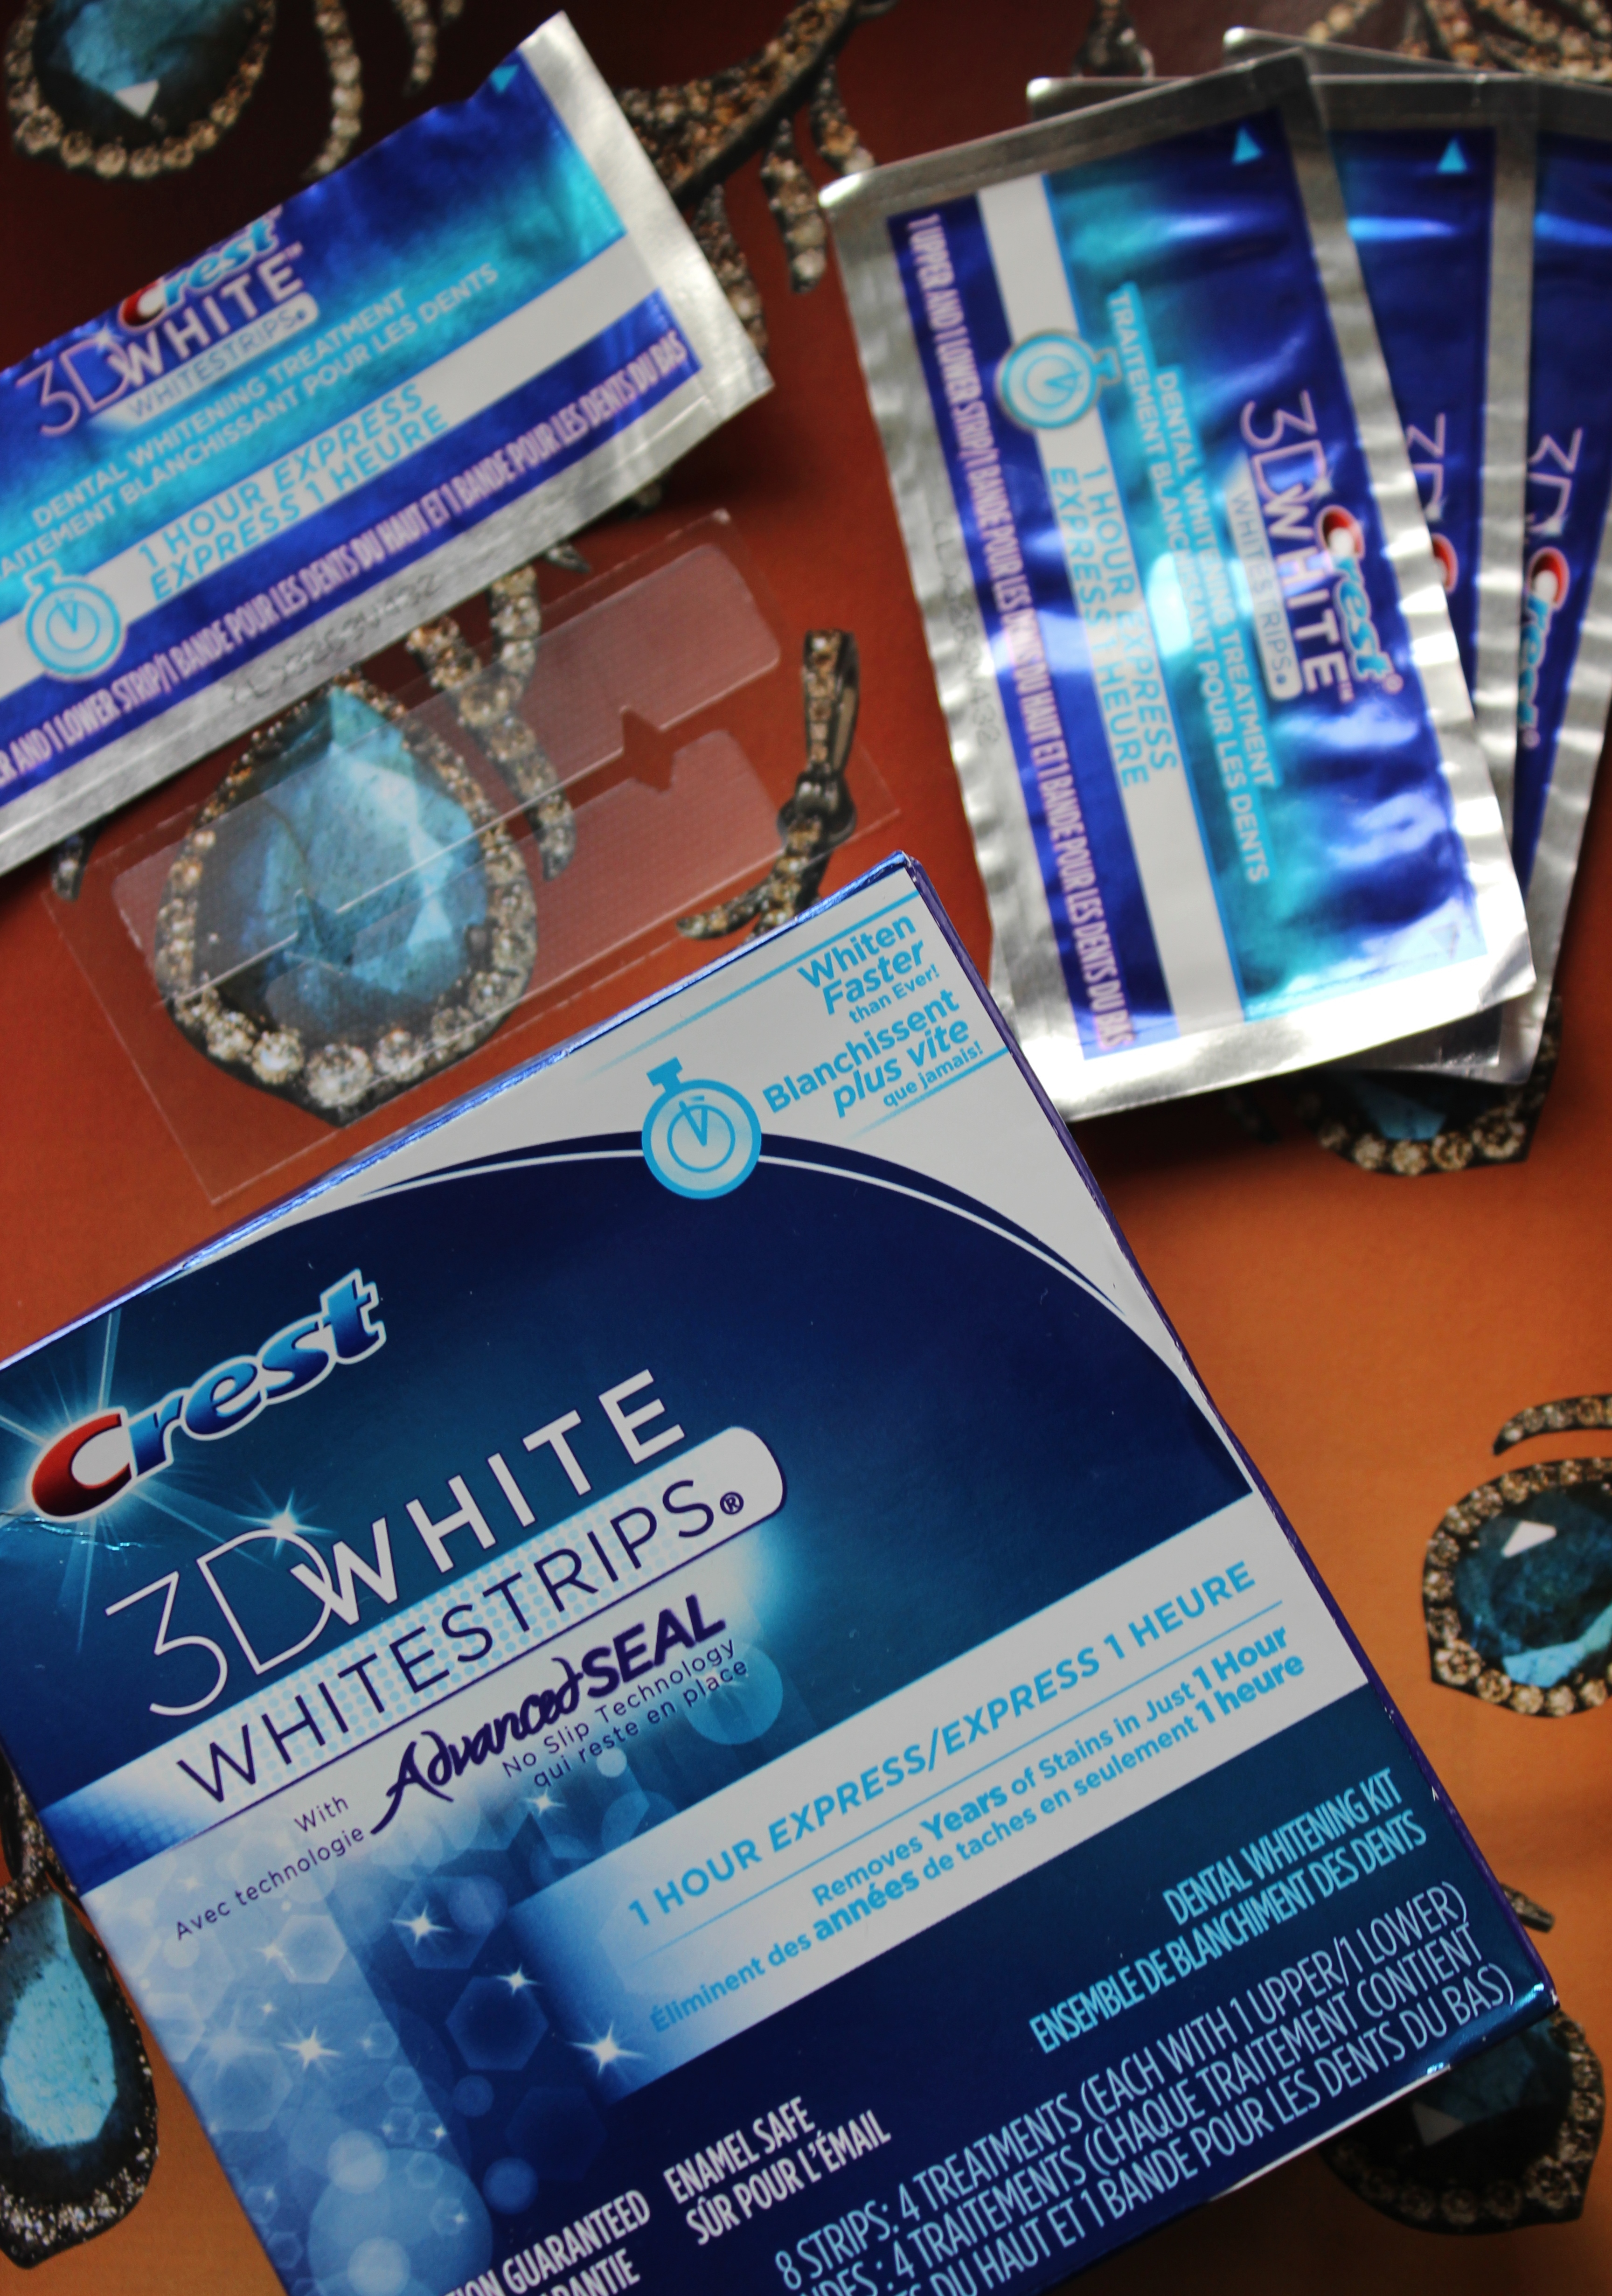 crest 1 hour express whitening strips review, uk, where to buy